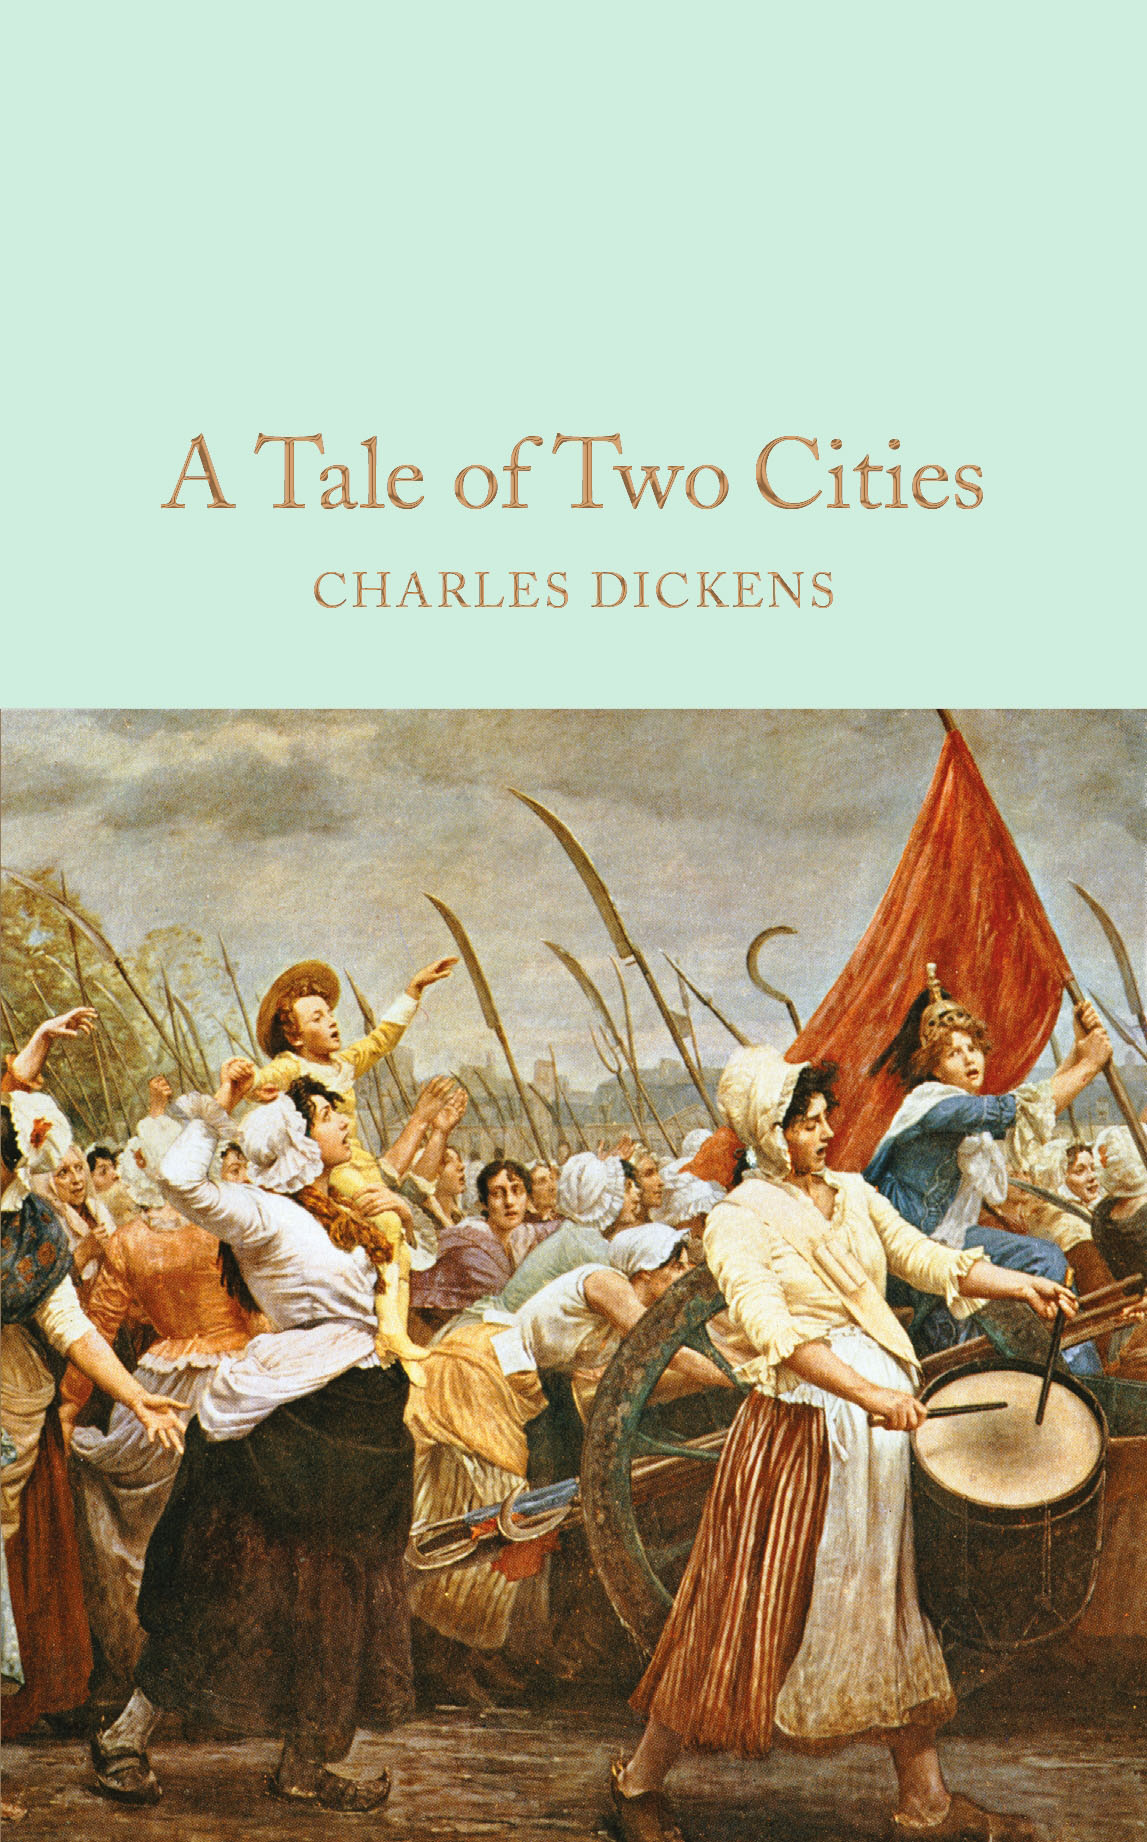 an analysis of the novel a tale of two cities by charles dickens